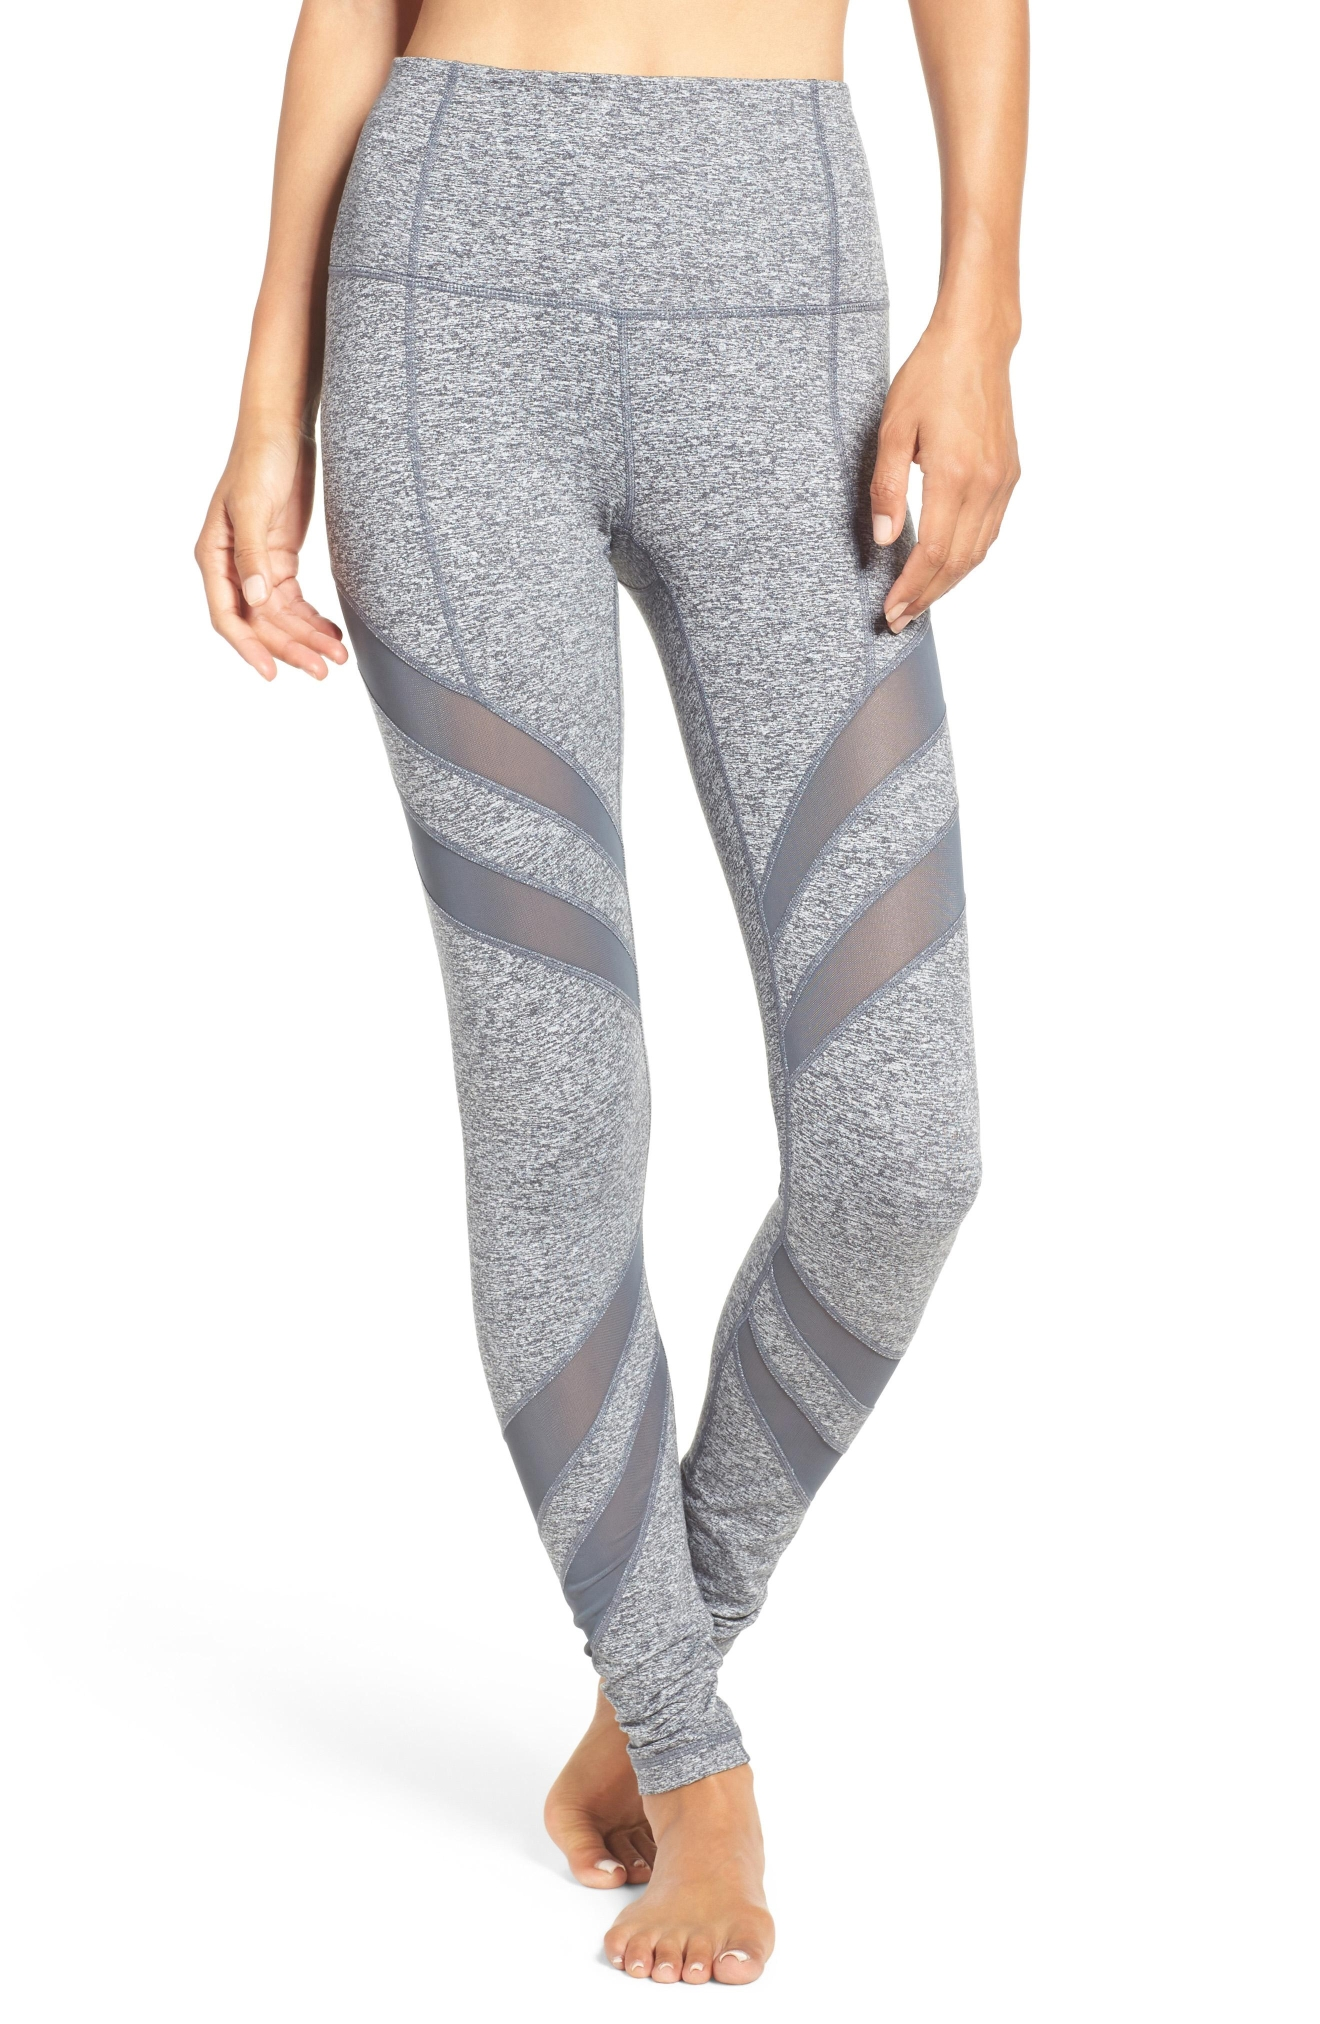 Zella 'Splice it Up' High Waist Leggings, $64. Available at select Nordstrom stores and nordstrom.com (Photo: Nordstrom)